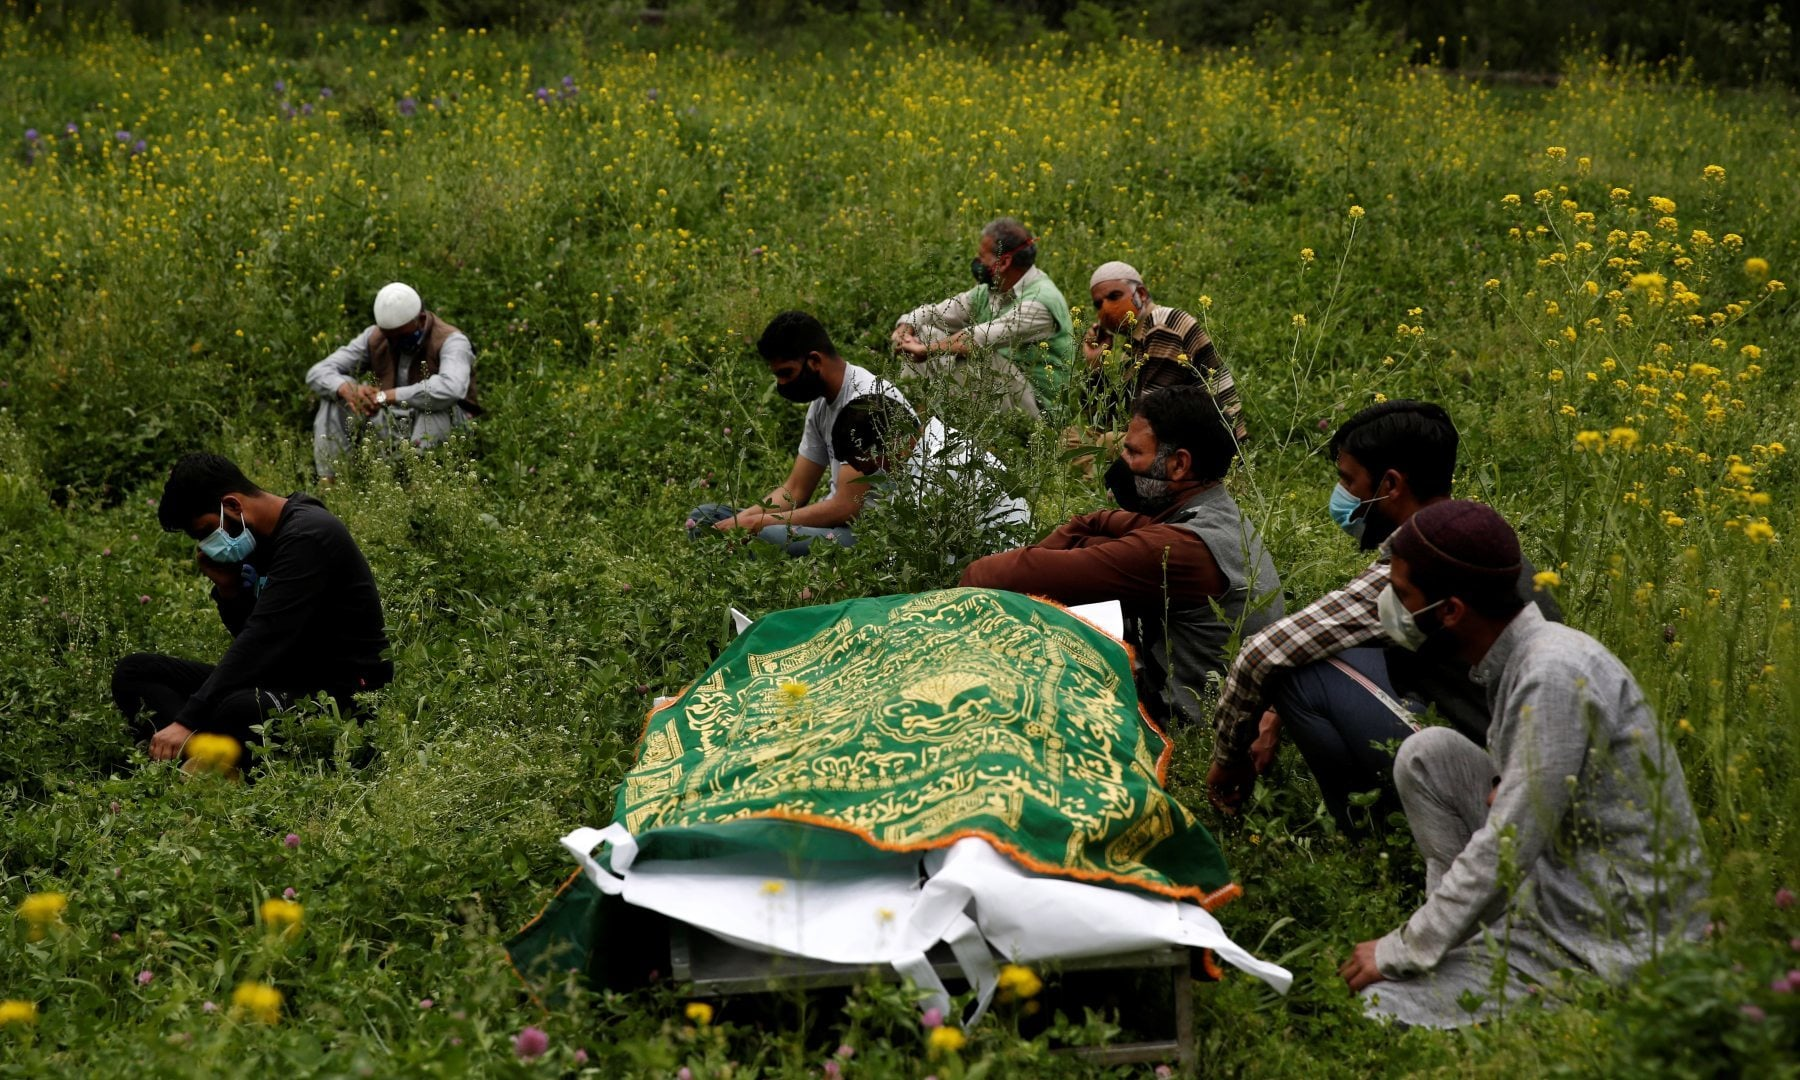 Relatives sit next to the body of a man who died due to Covid-19, as they wait for a grave to be prepared for his burial at a graveyard on the outskirts of Srinagar, May 4. — Reuters